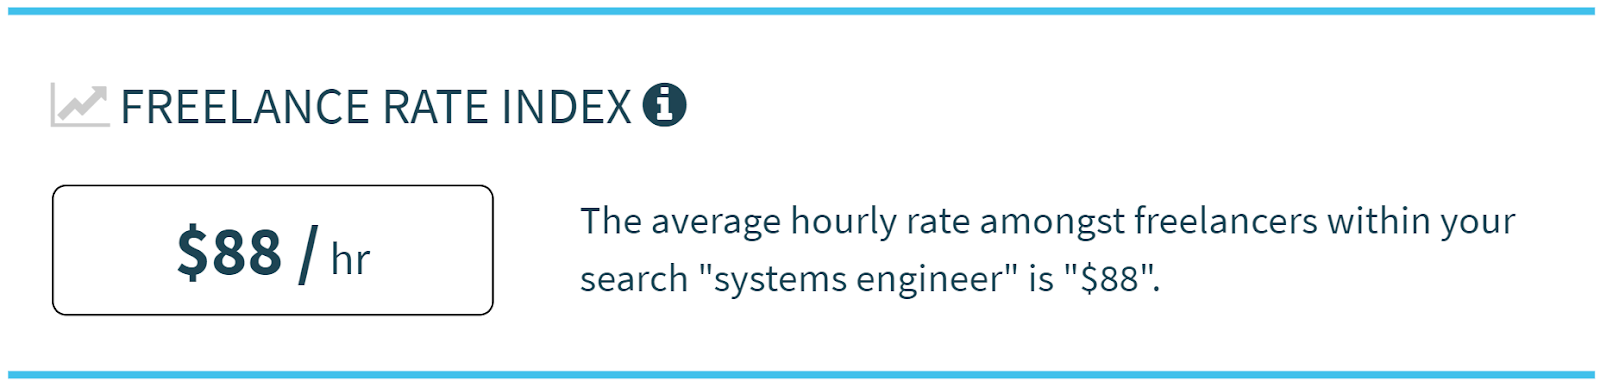 Average Freelance Rate of a Systems Engineer